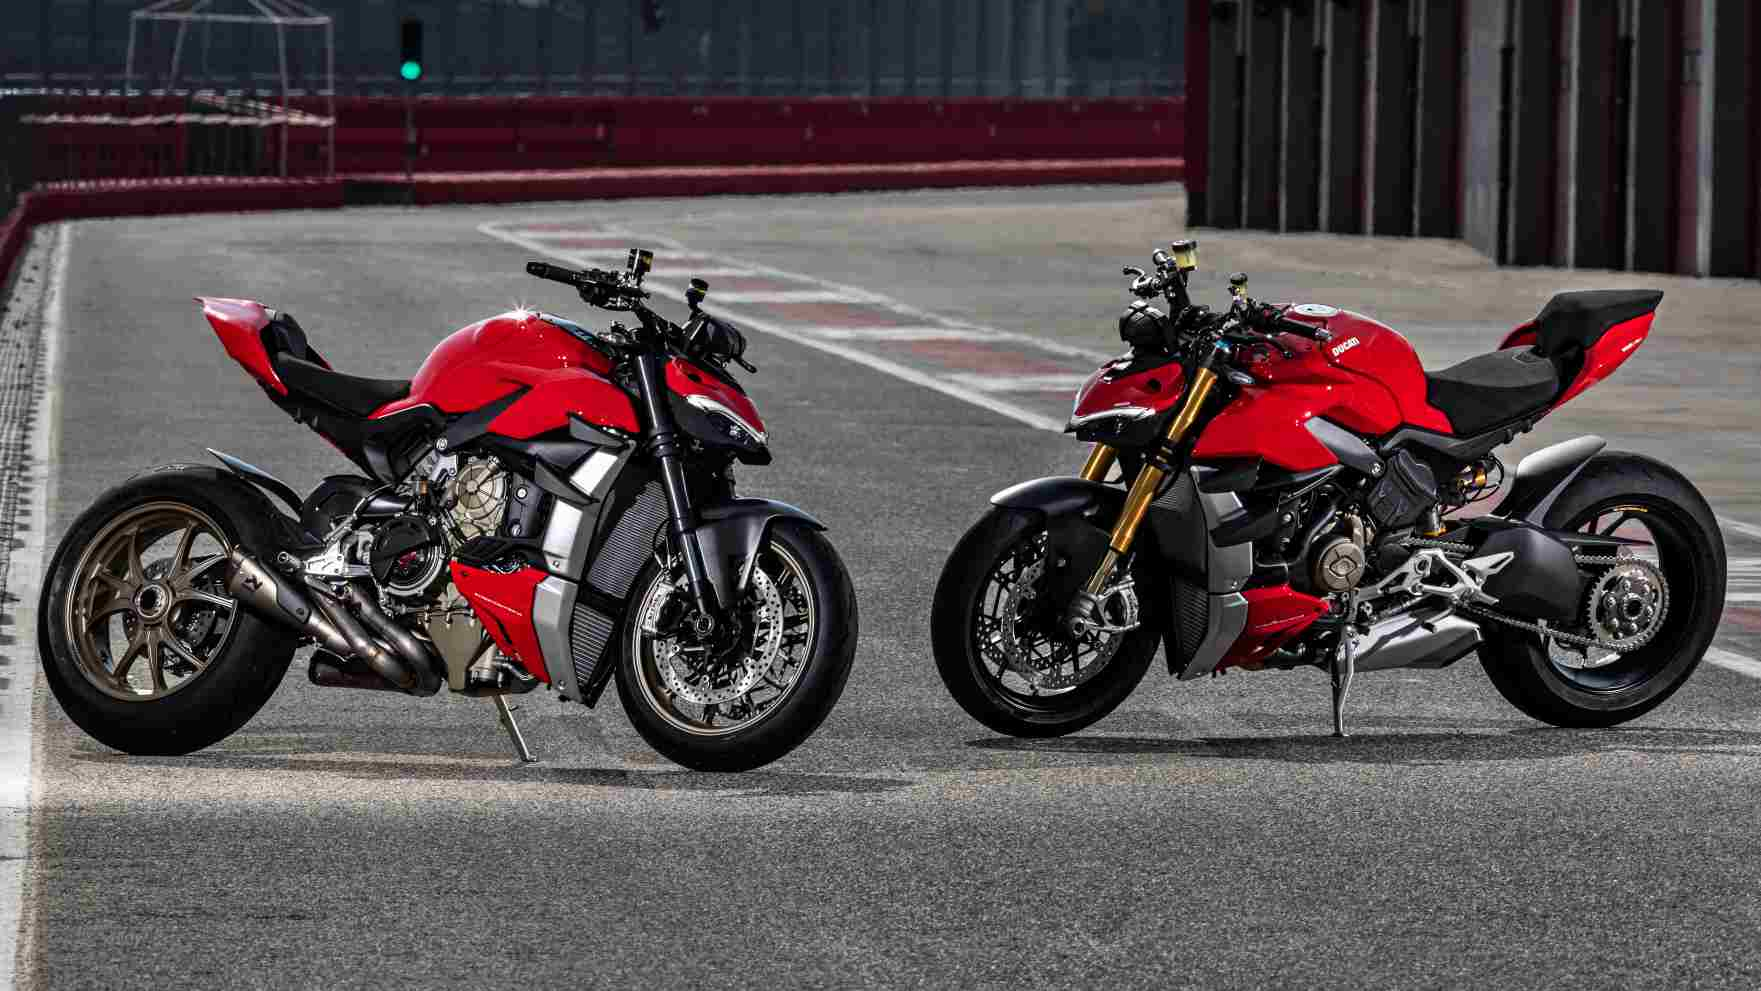 Ducati Streetfighter V4, V4 S launched in India, prices range from Rs 20-23 lakh- Technology News, Gadgetclock